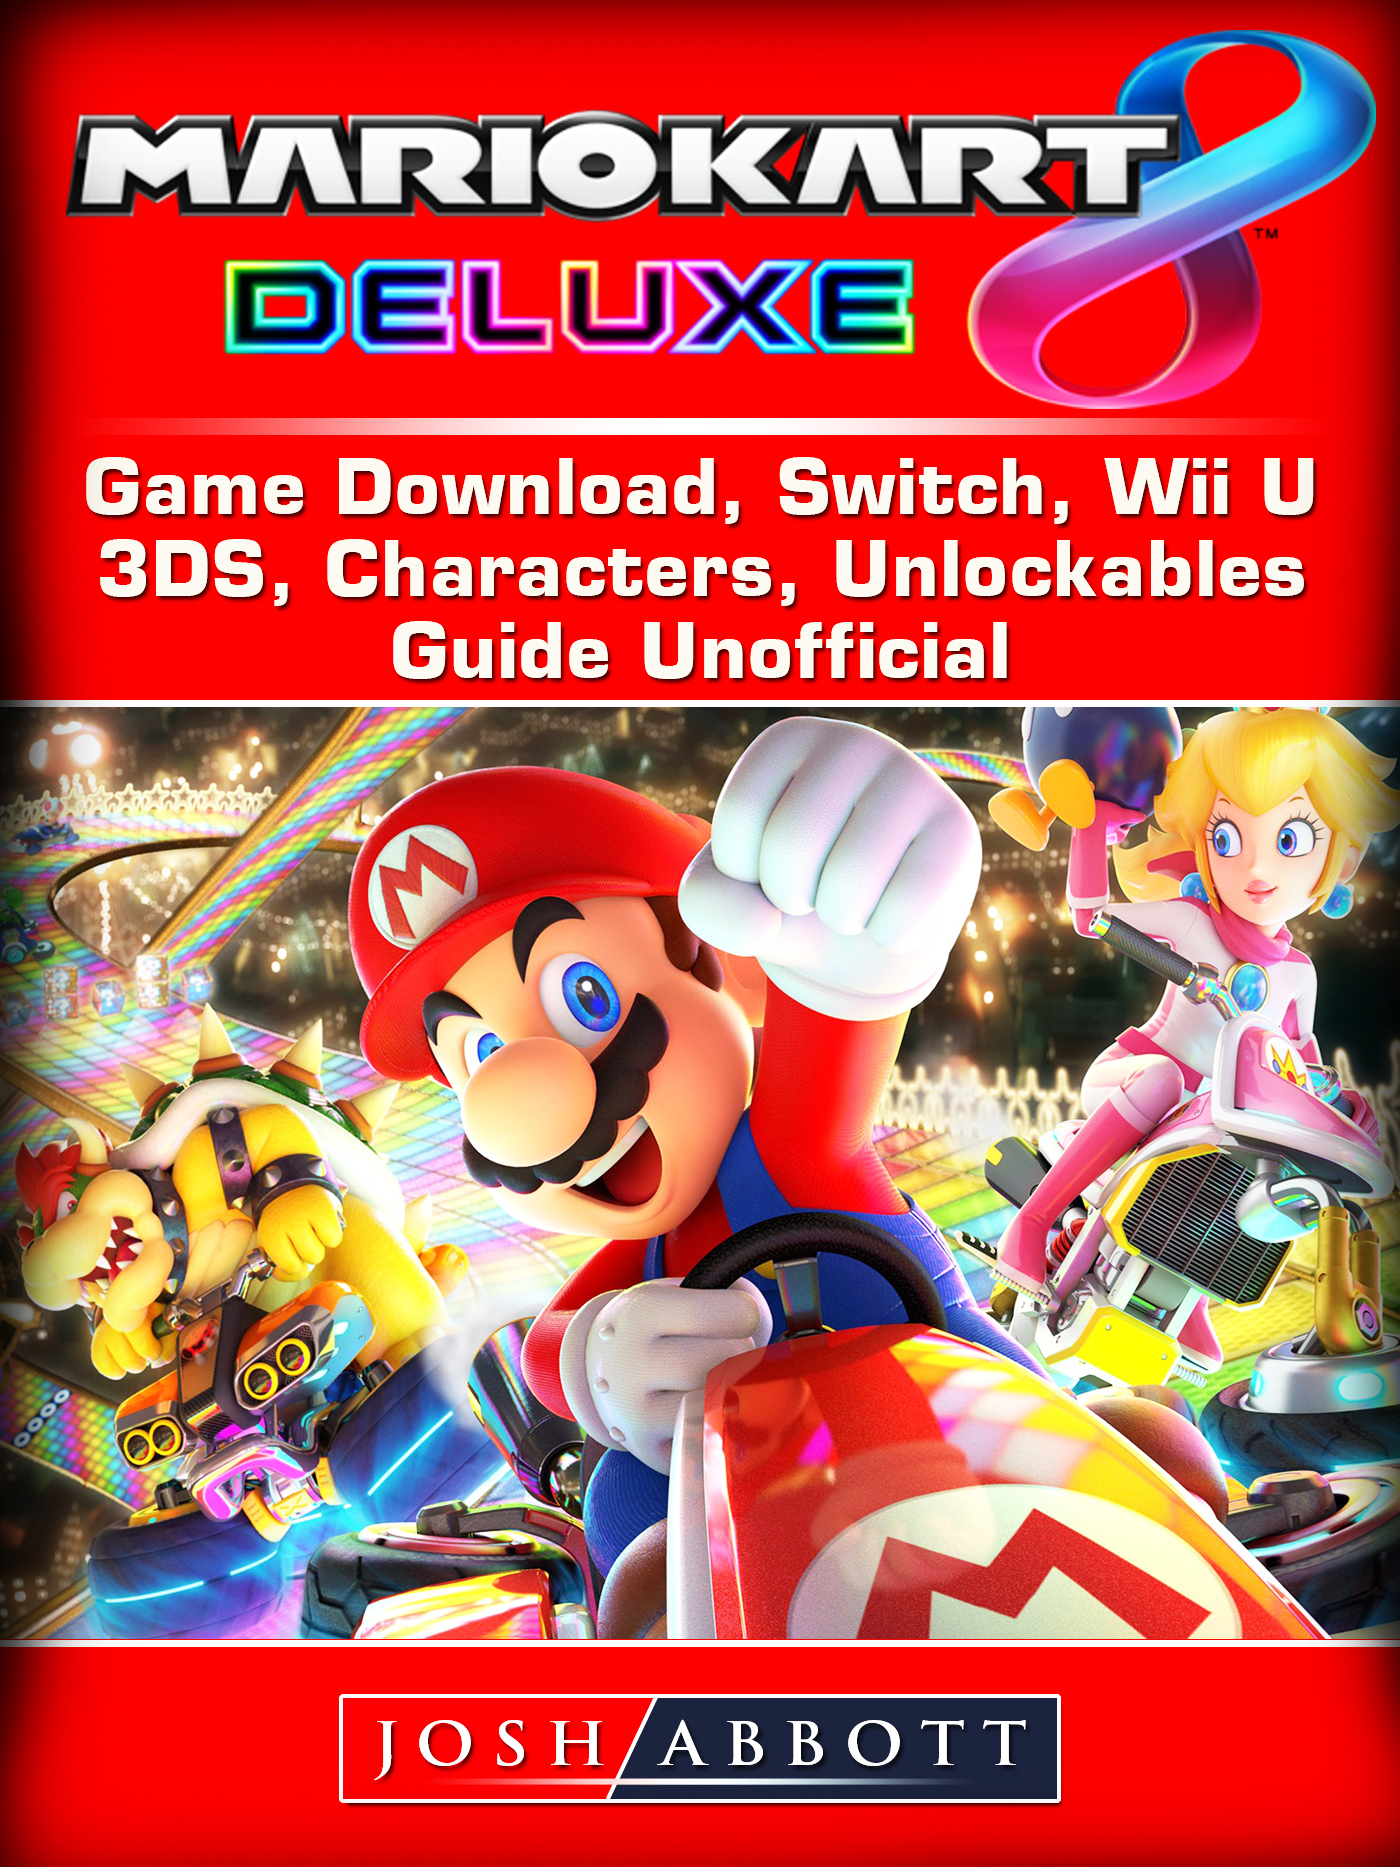 mario kart 8 deluxe game download switch wii u 3ds characters unlockables guide unofficial. Black Bedroom Furniture Sets. Home Design Ideas